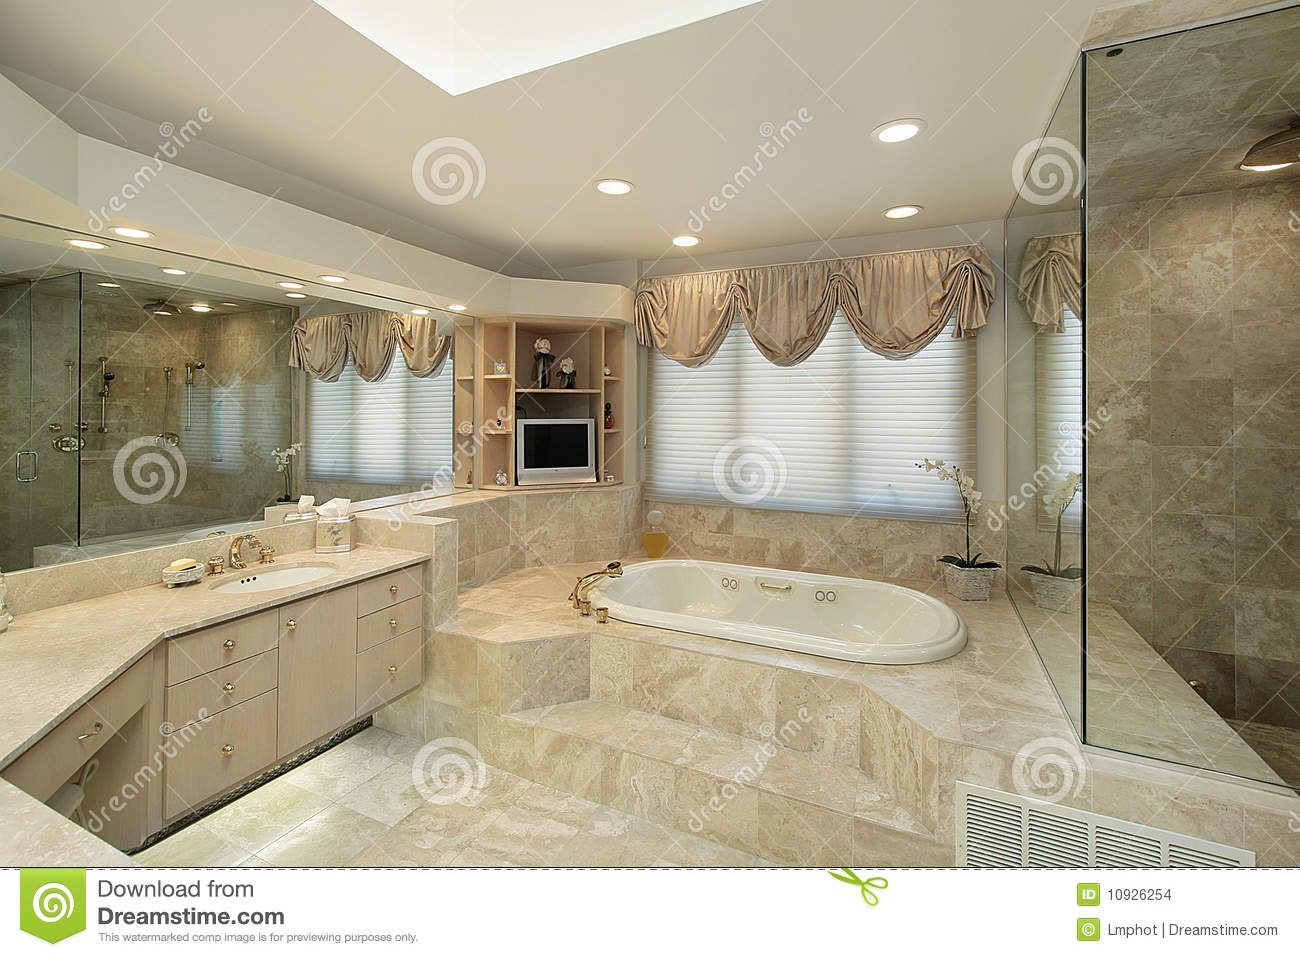 Master Bath With Step Up Tub Stock Photo - Image of suburban, family ...